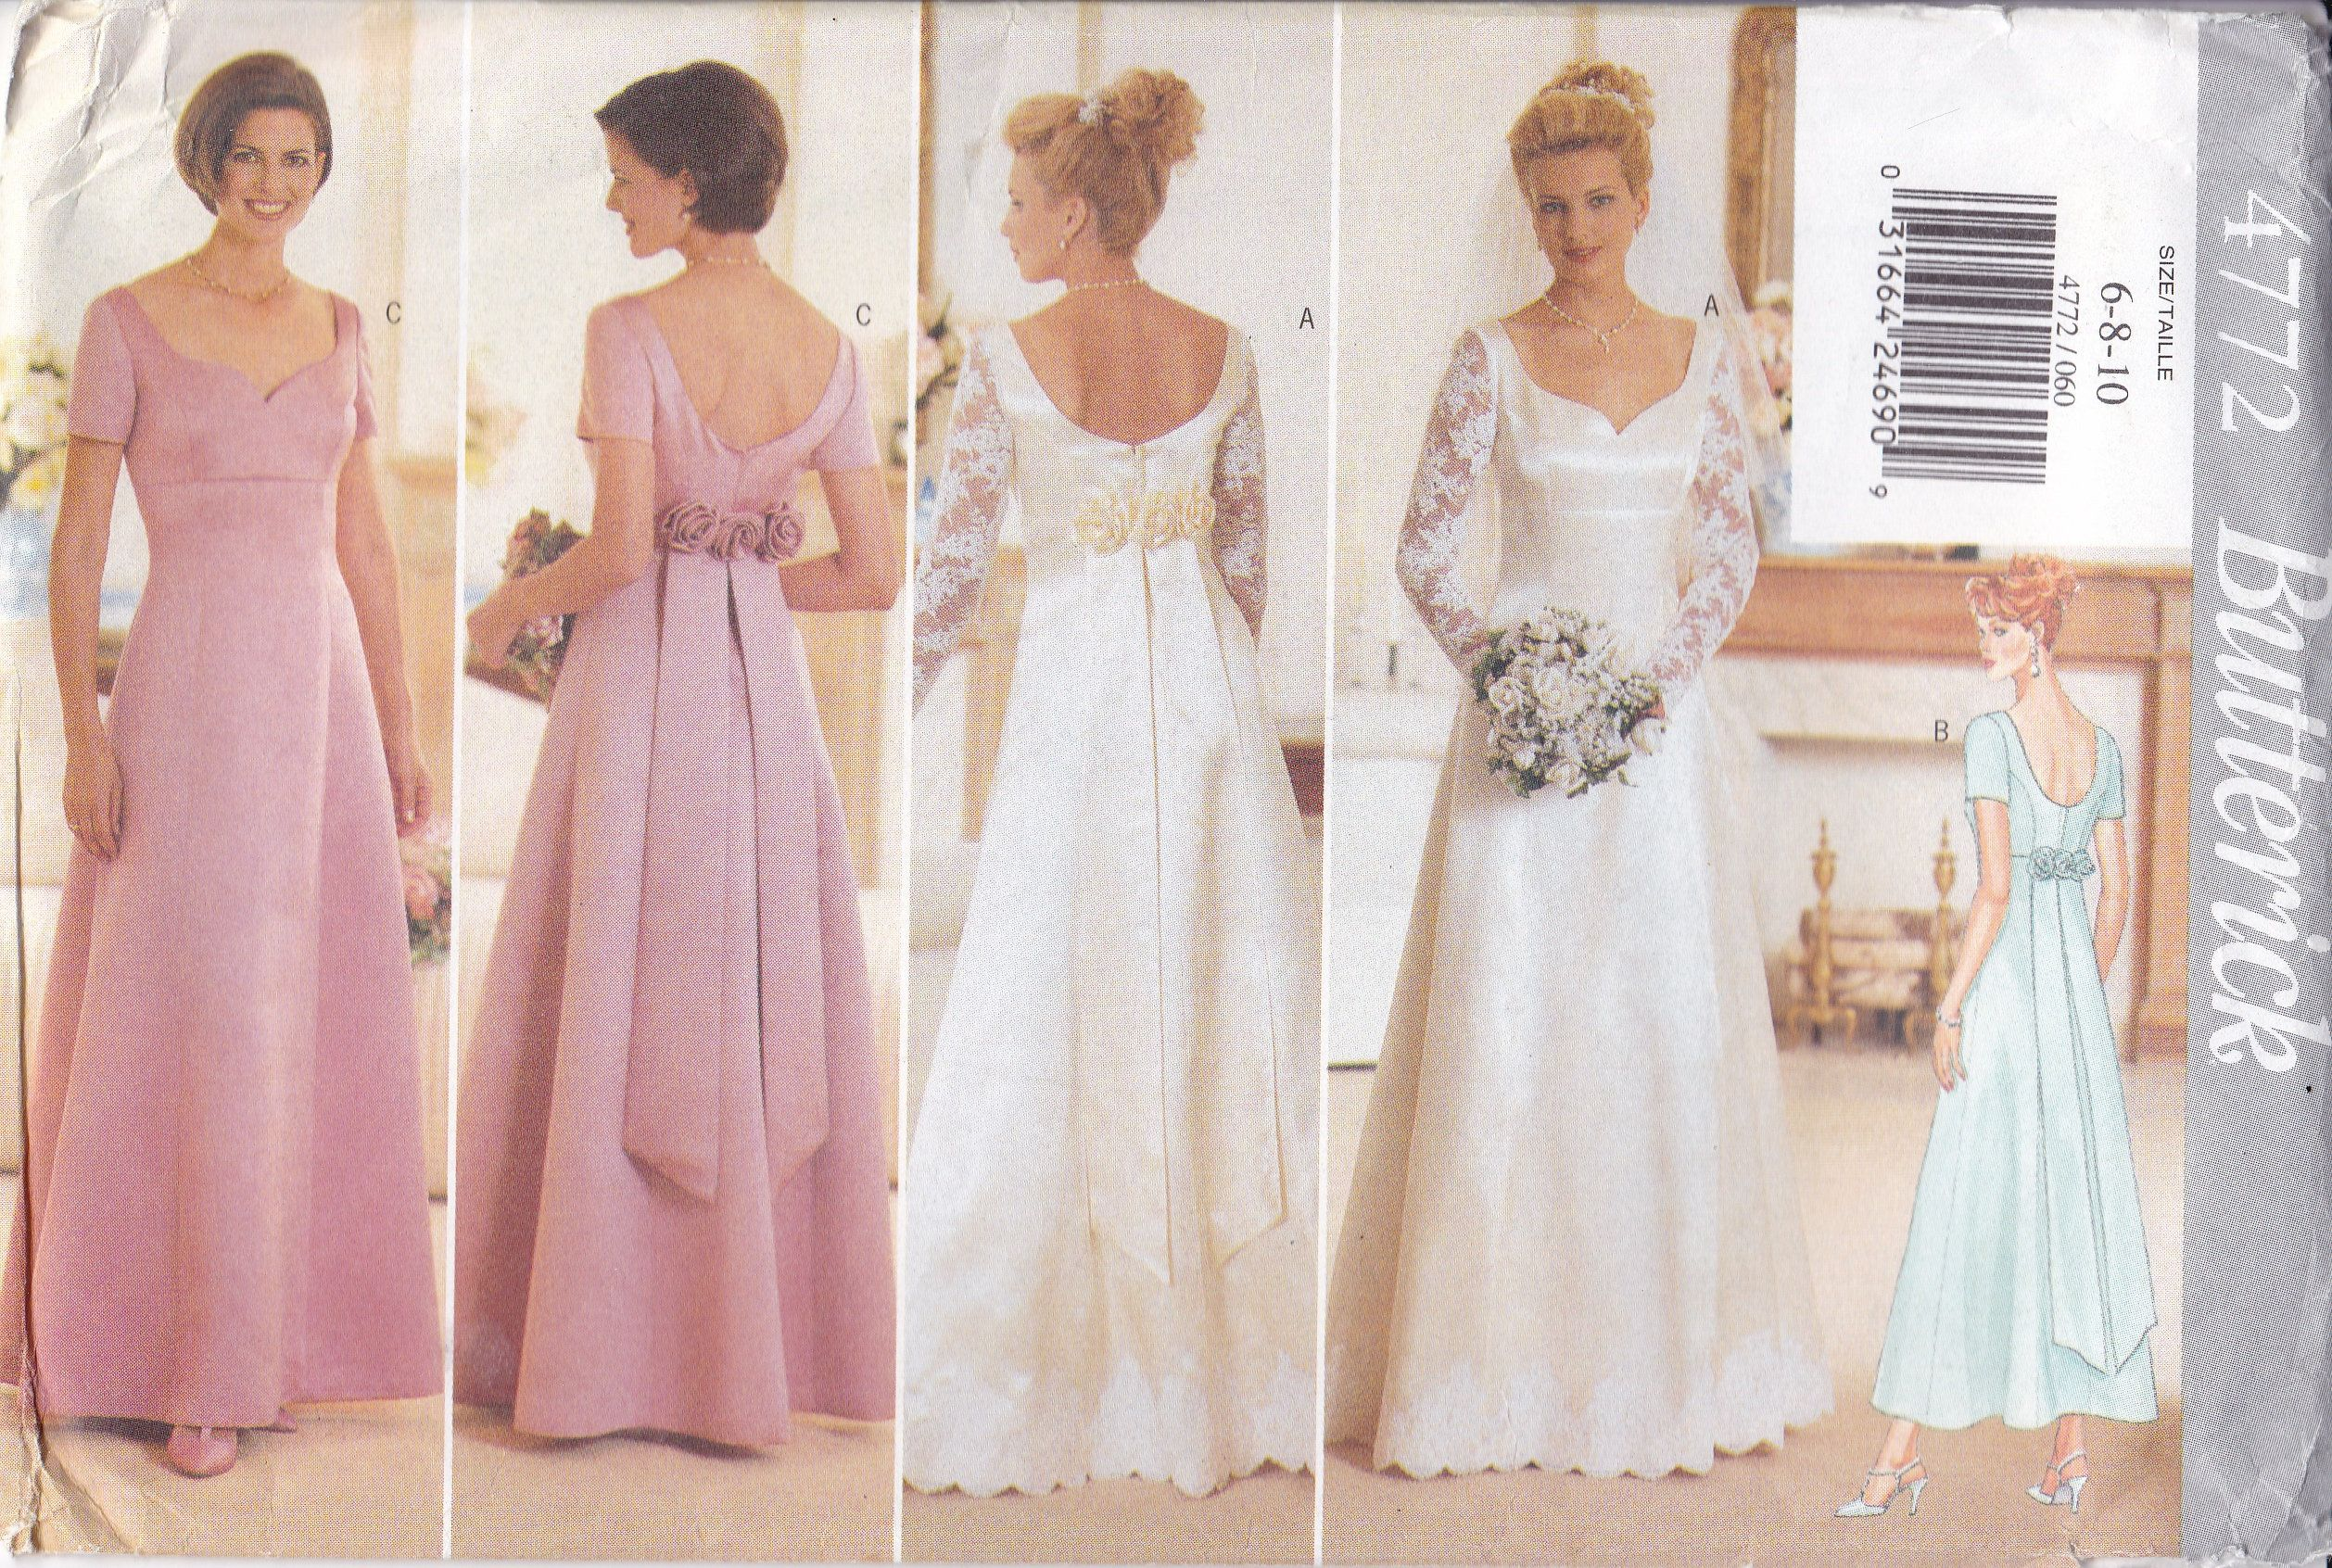 New Sewing Pattern Butterick 4772 For Wedding Gown Bridal Etsy In 2020 Gown Sewing Pattern Bridal Dresses Dress Patterns